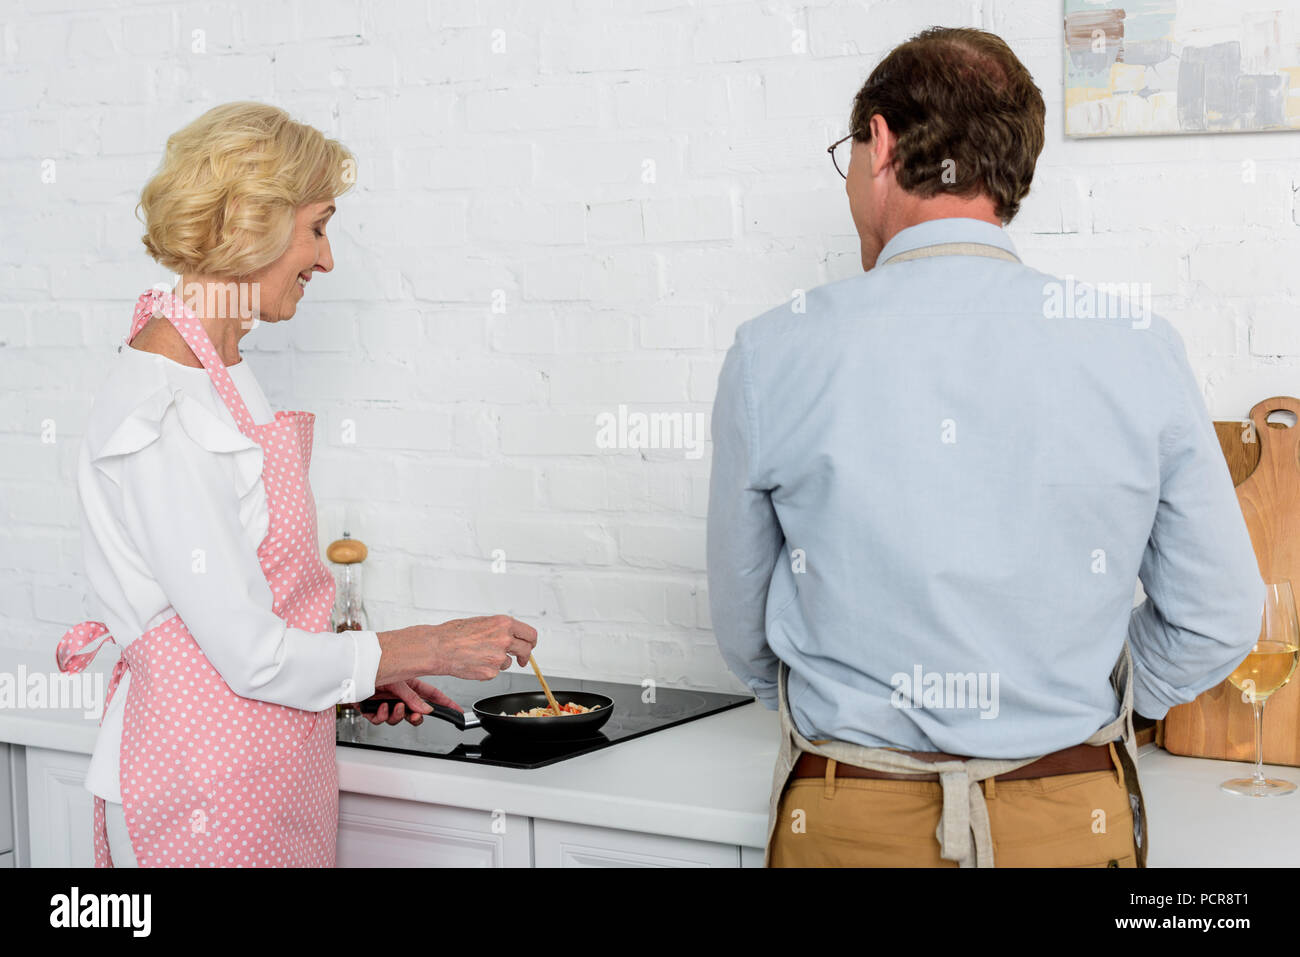 back view of senior couple cooking together at kitchen - Stock Image